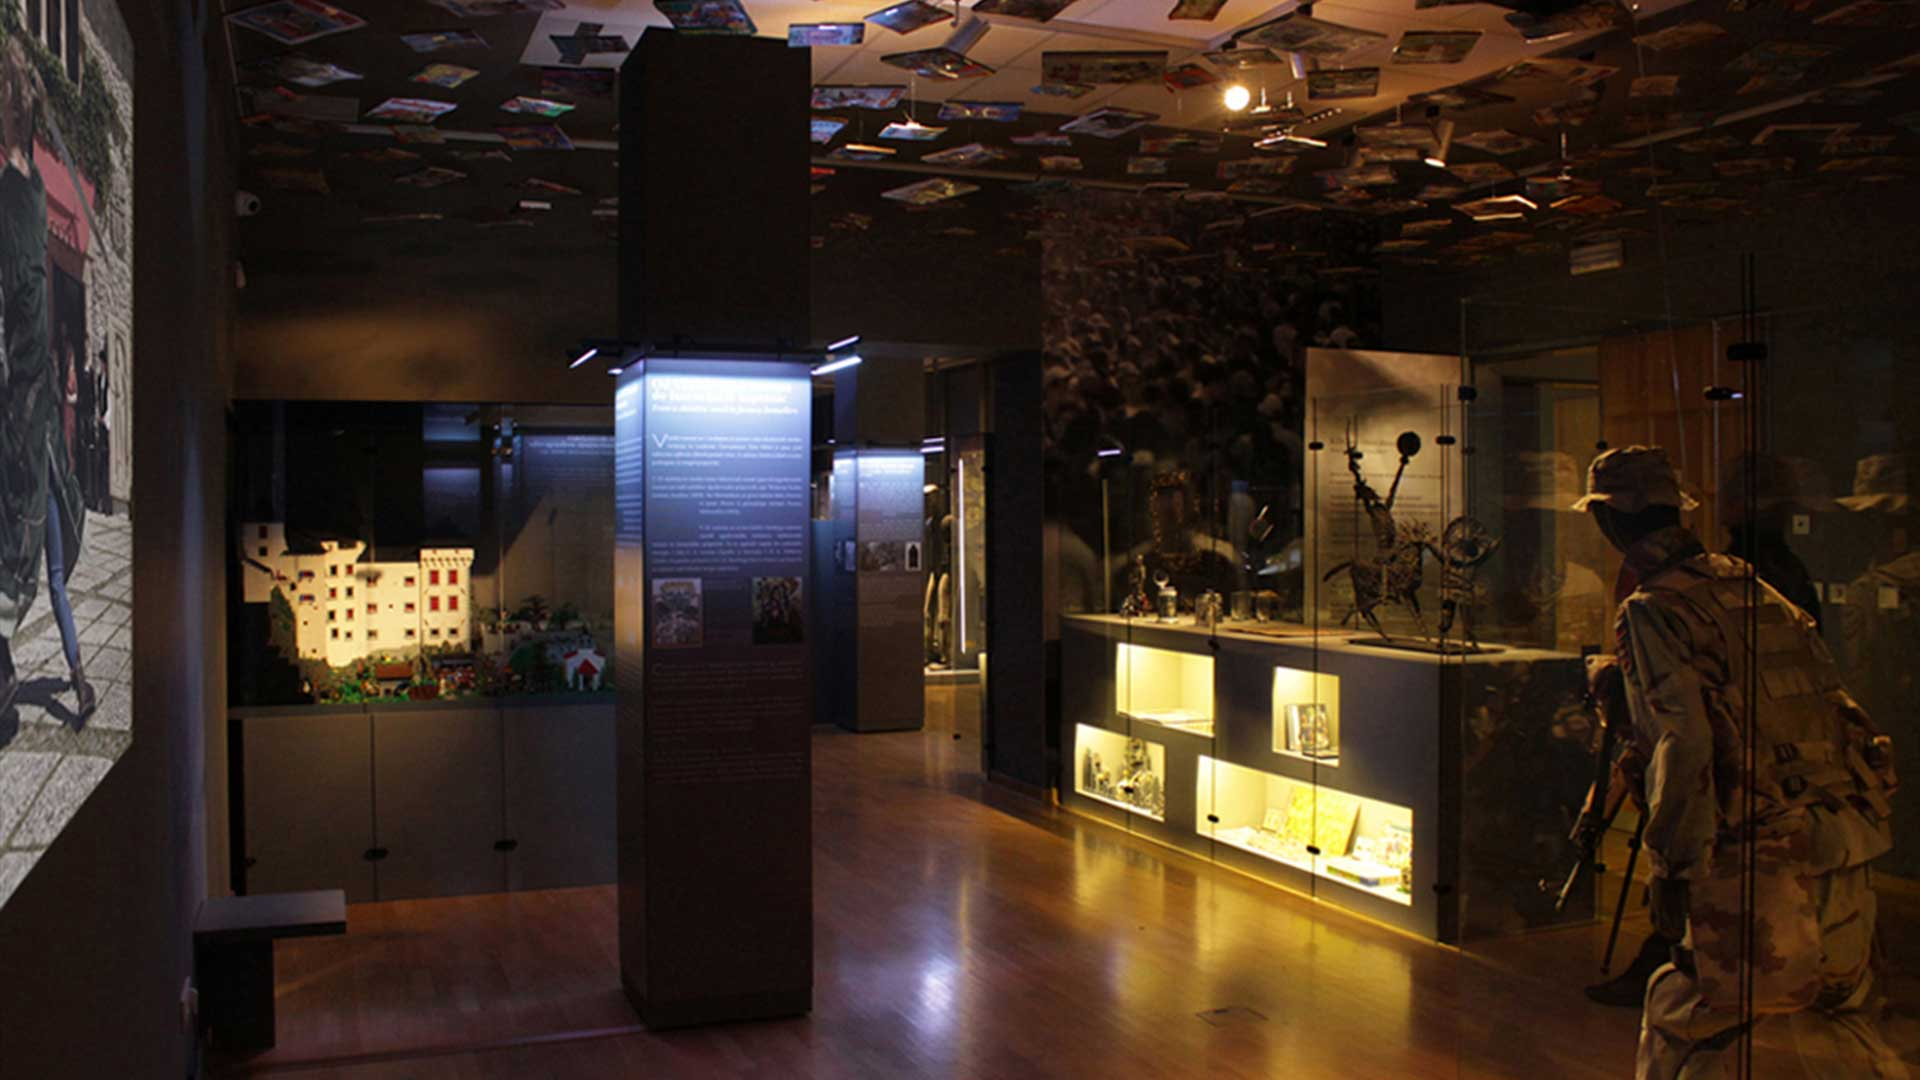 Museum Design Avciarchitects